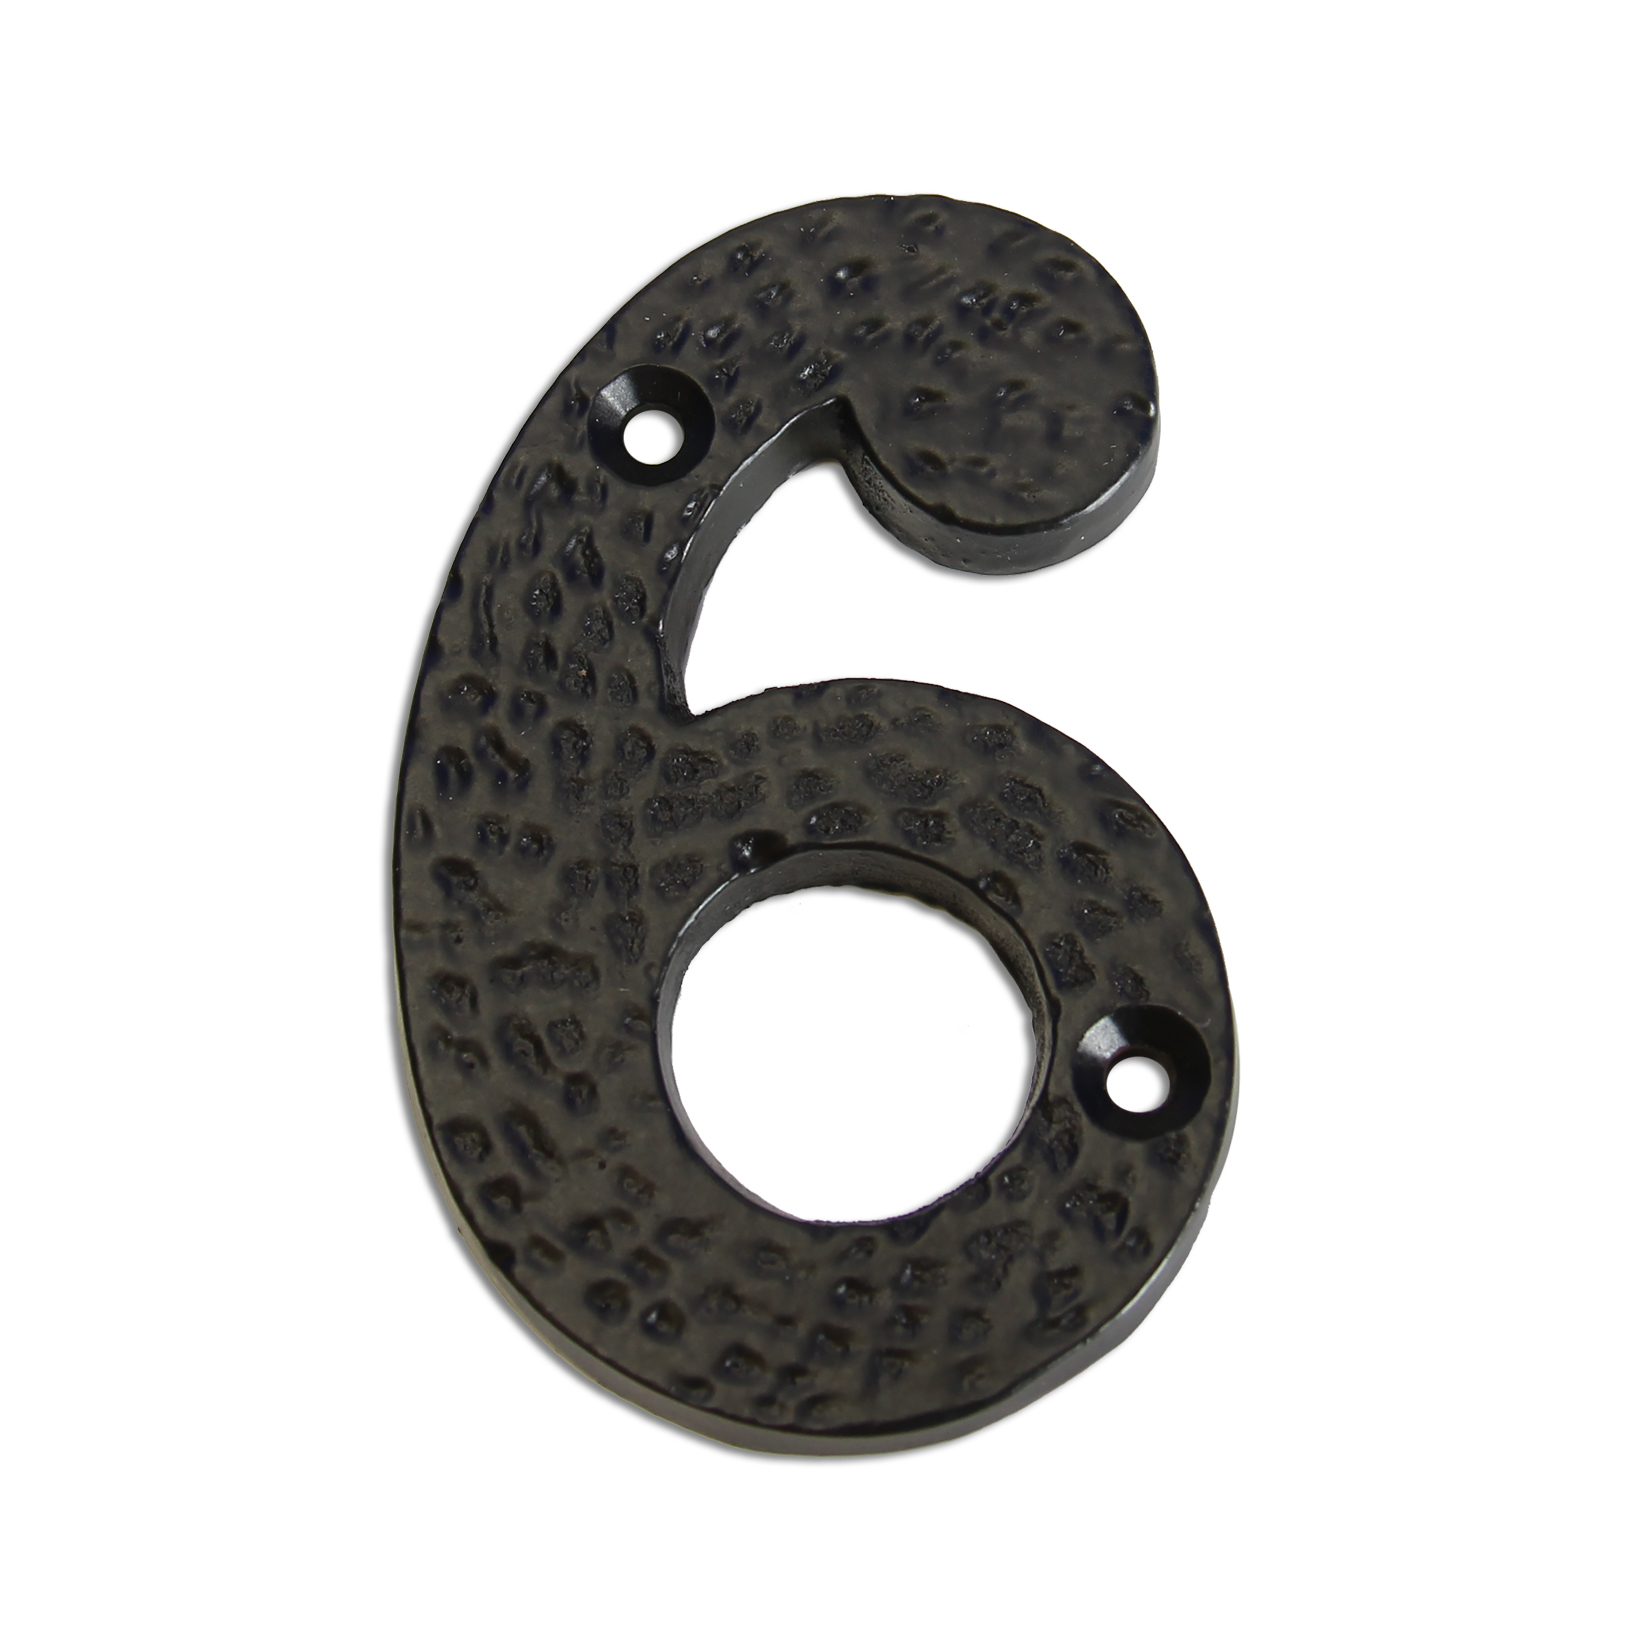 3-inch iron metal house number in iron black finish - metal number 6